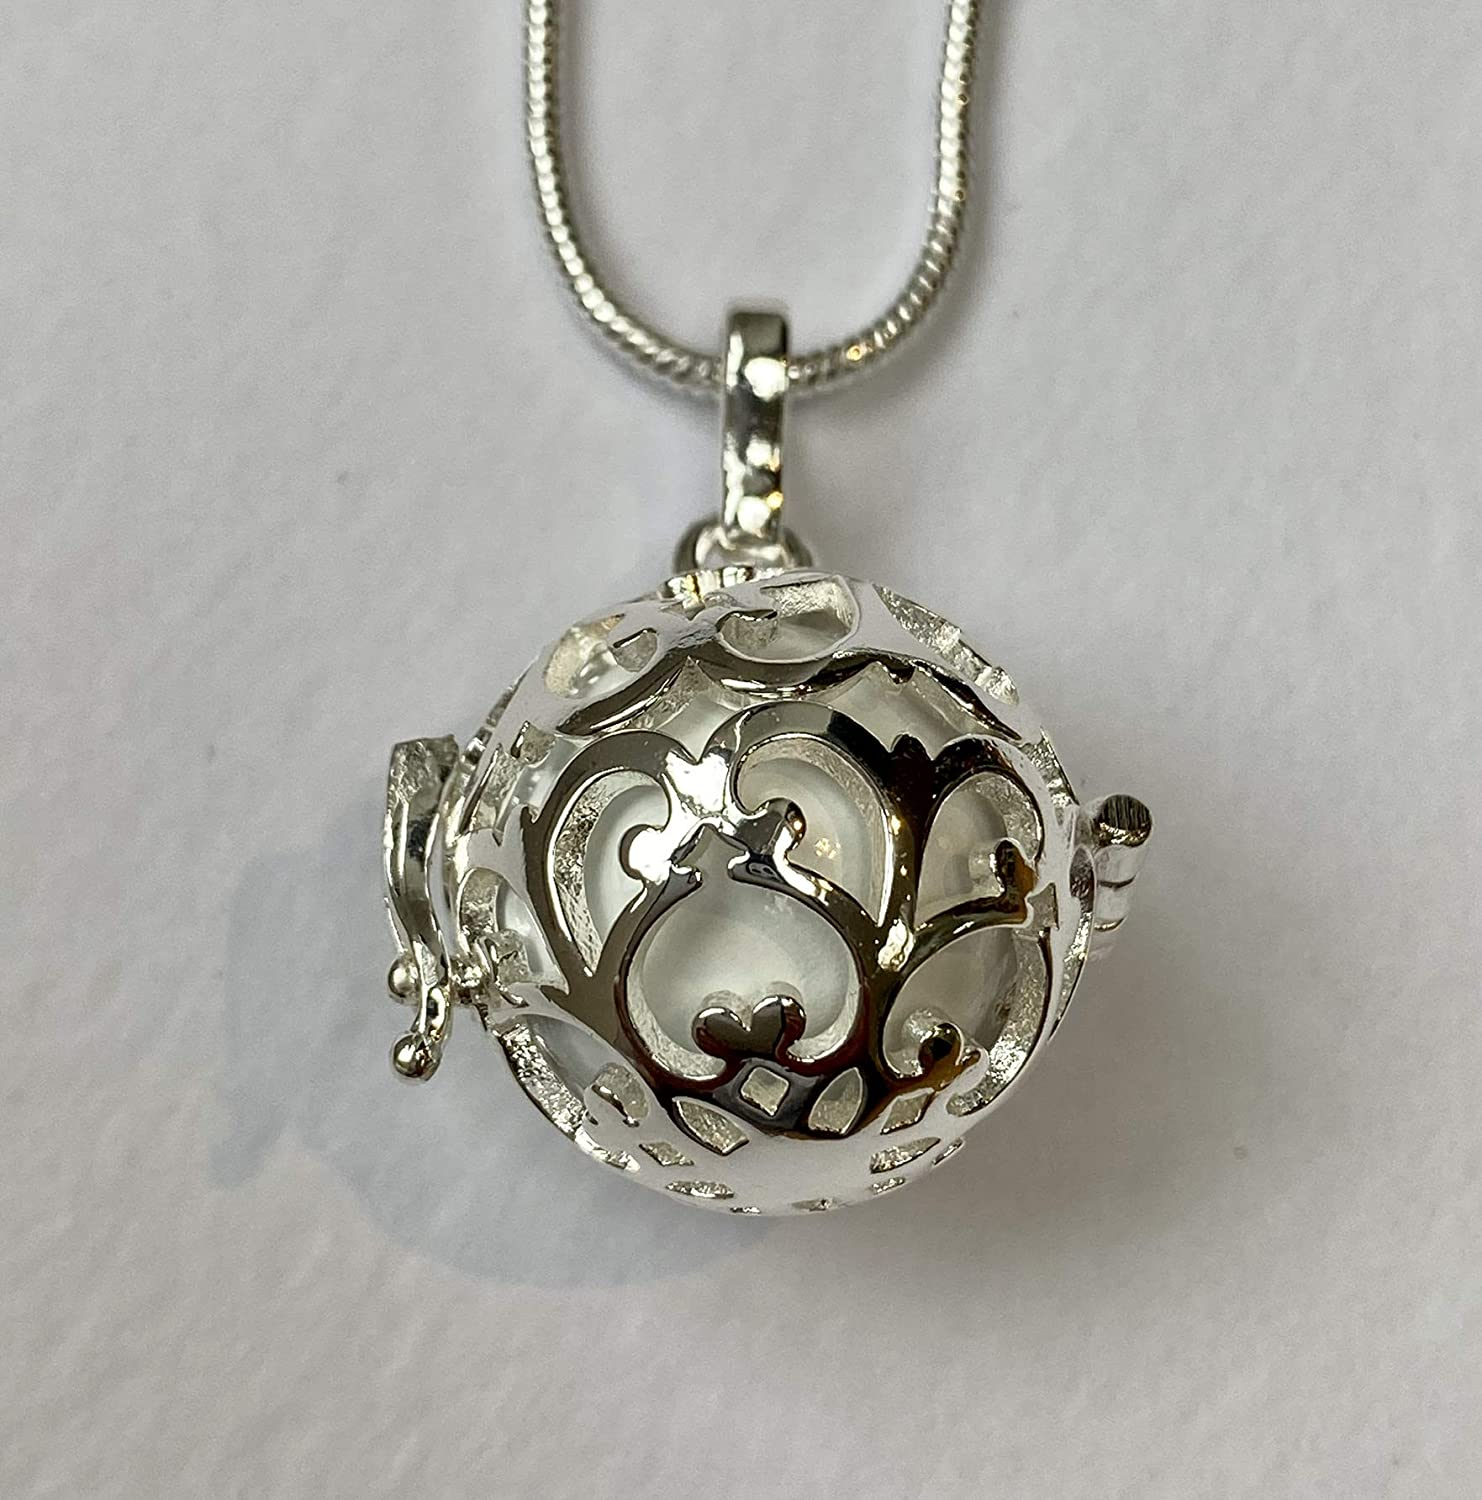 Silver Tree of Life Cage with Silver Bola l Harmony Ball Necklace Kit l Mexican Bola l A Lovely Pregnancy Gift